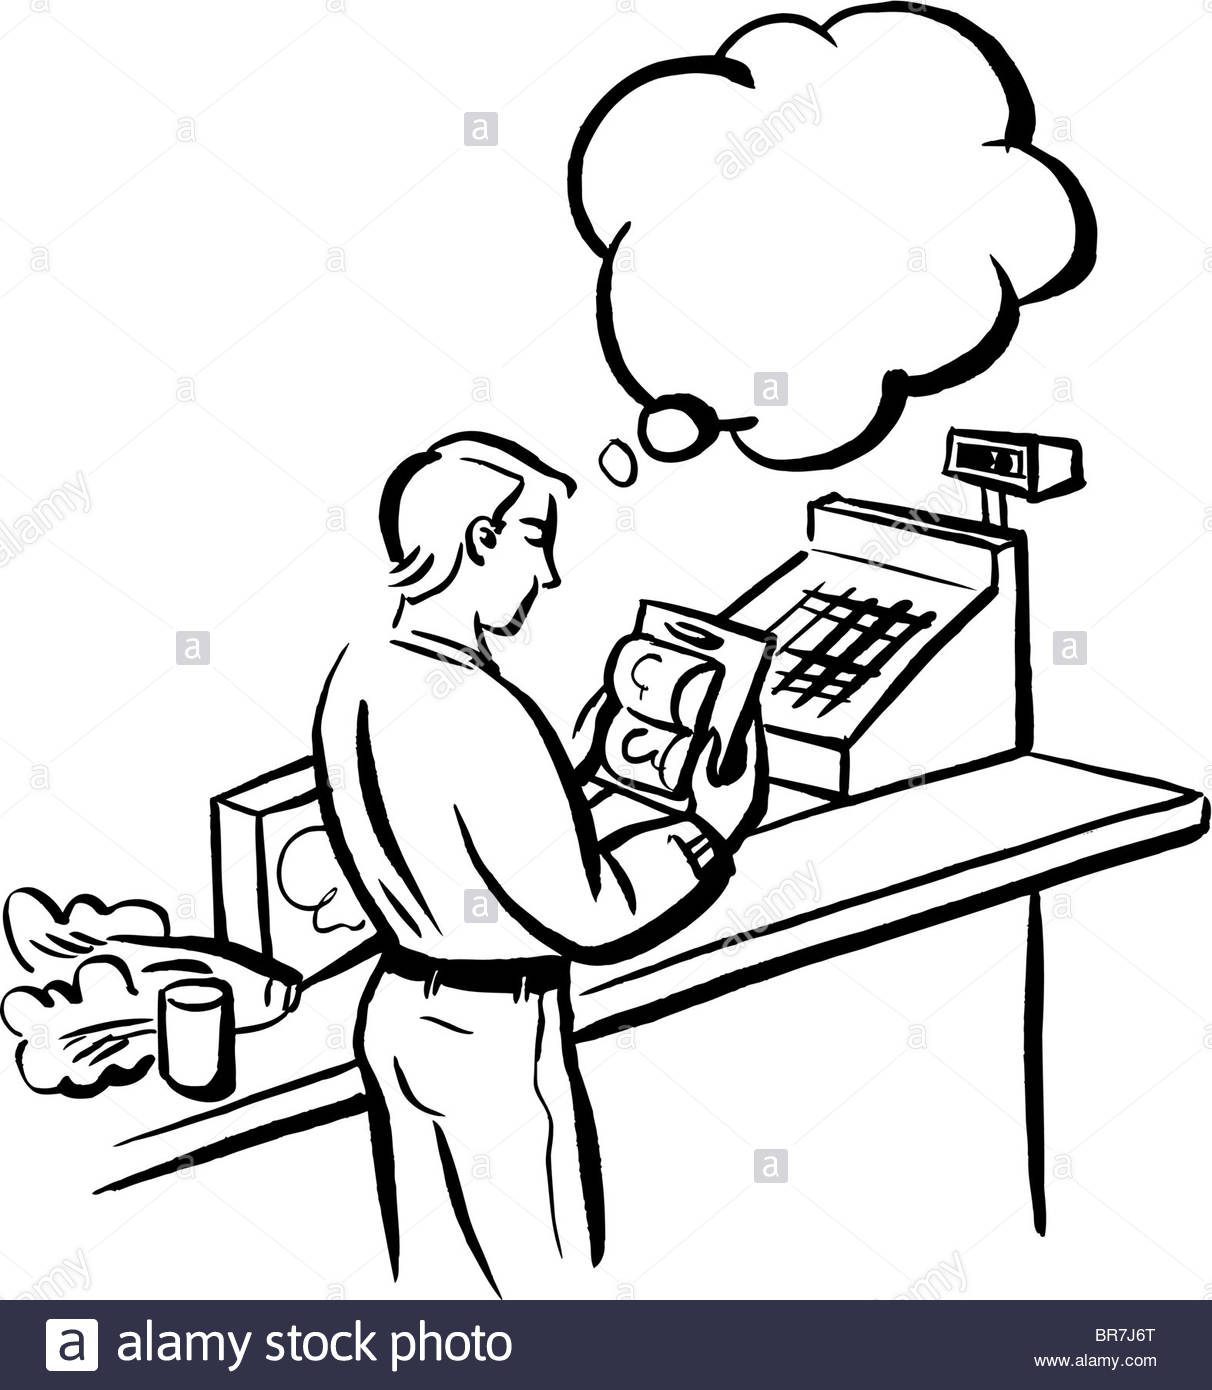 1212x1390 A Black And White Drawing Of A Man Making A Buying Decision